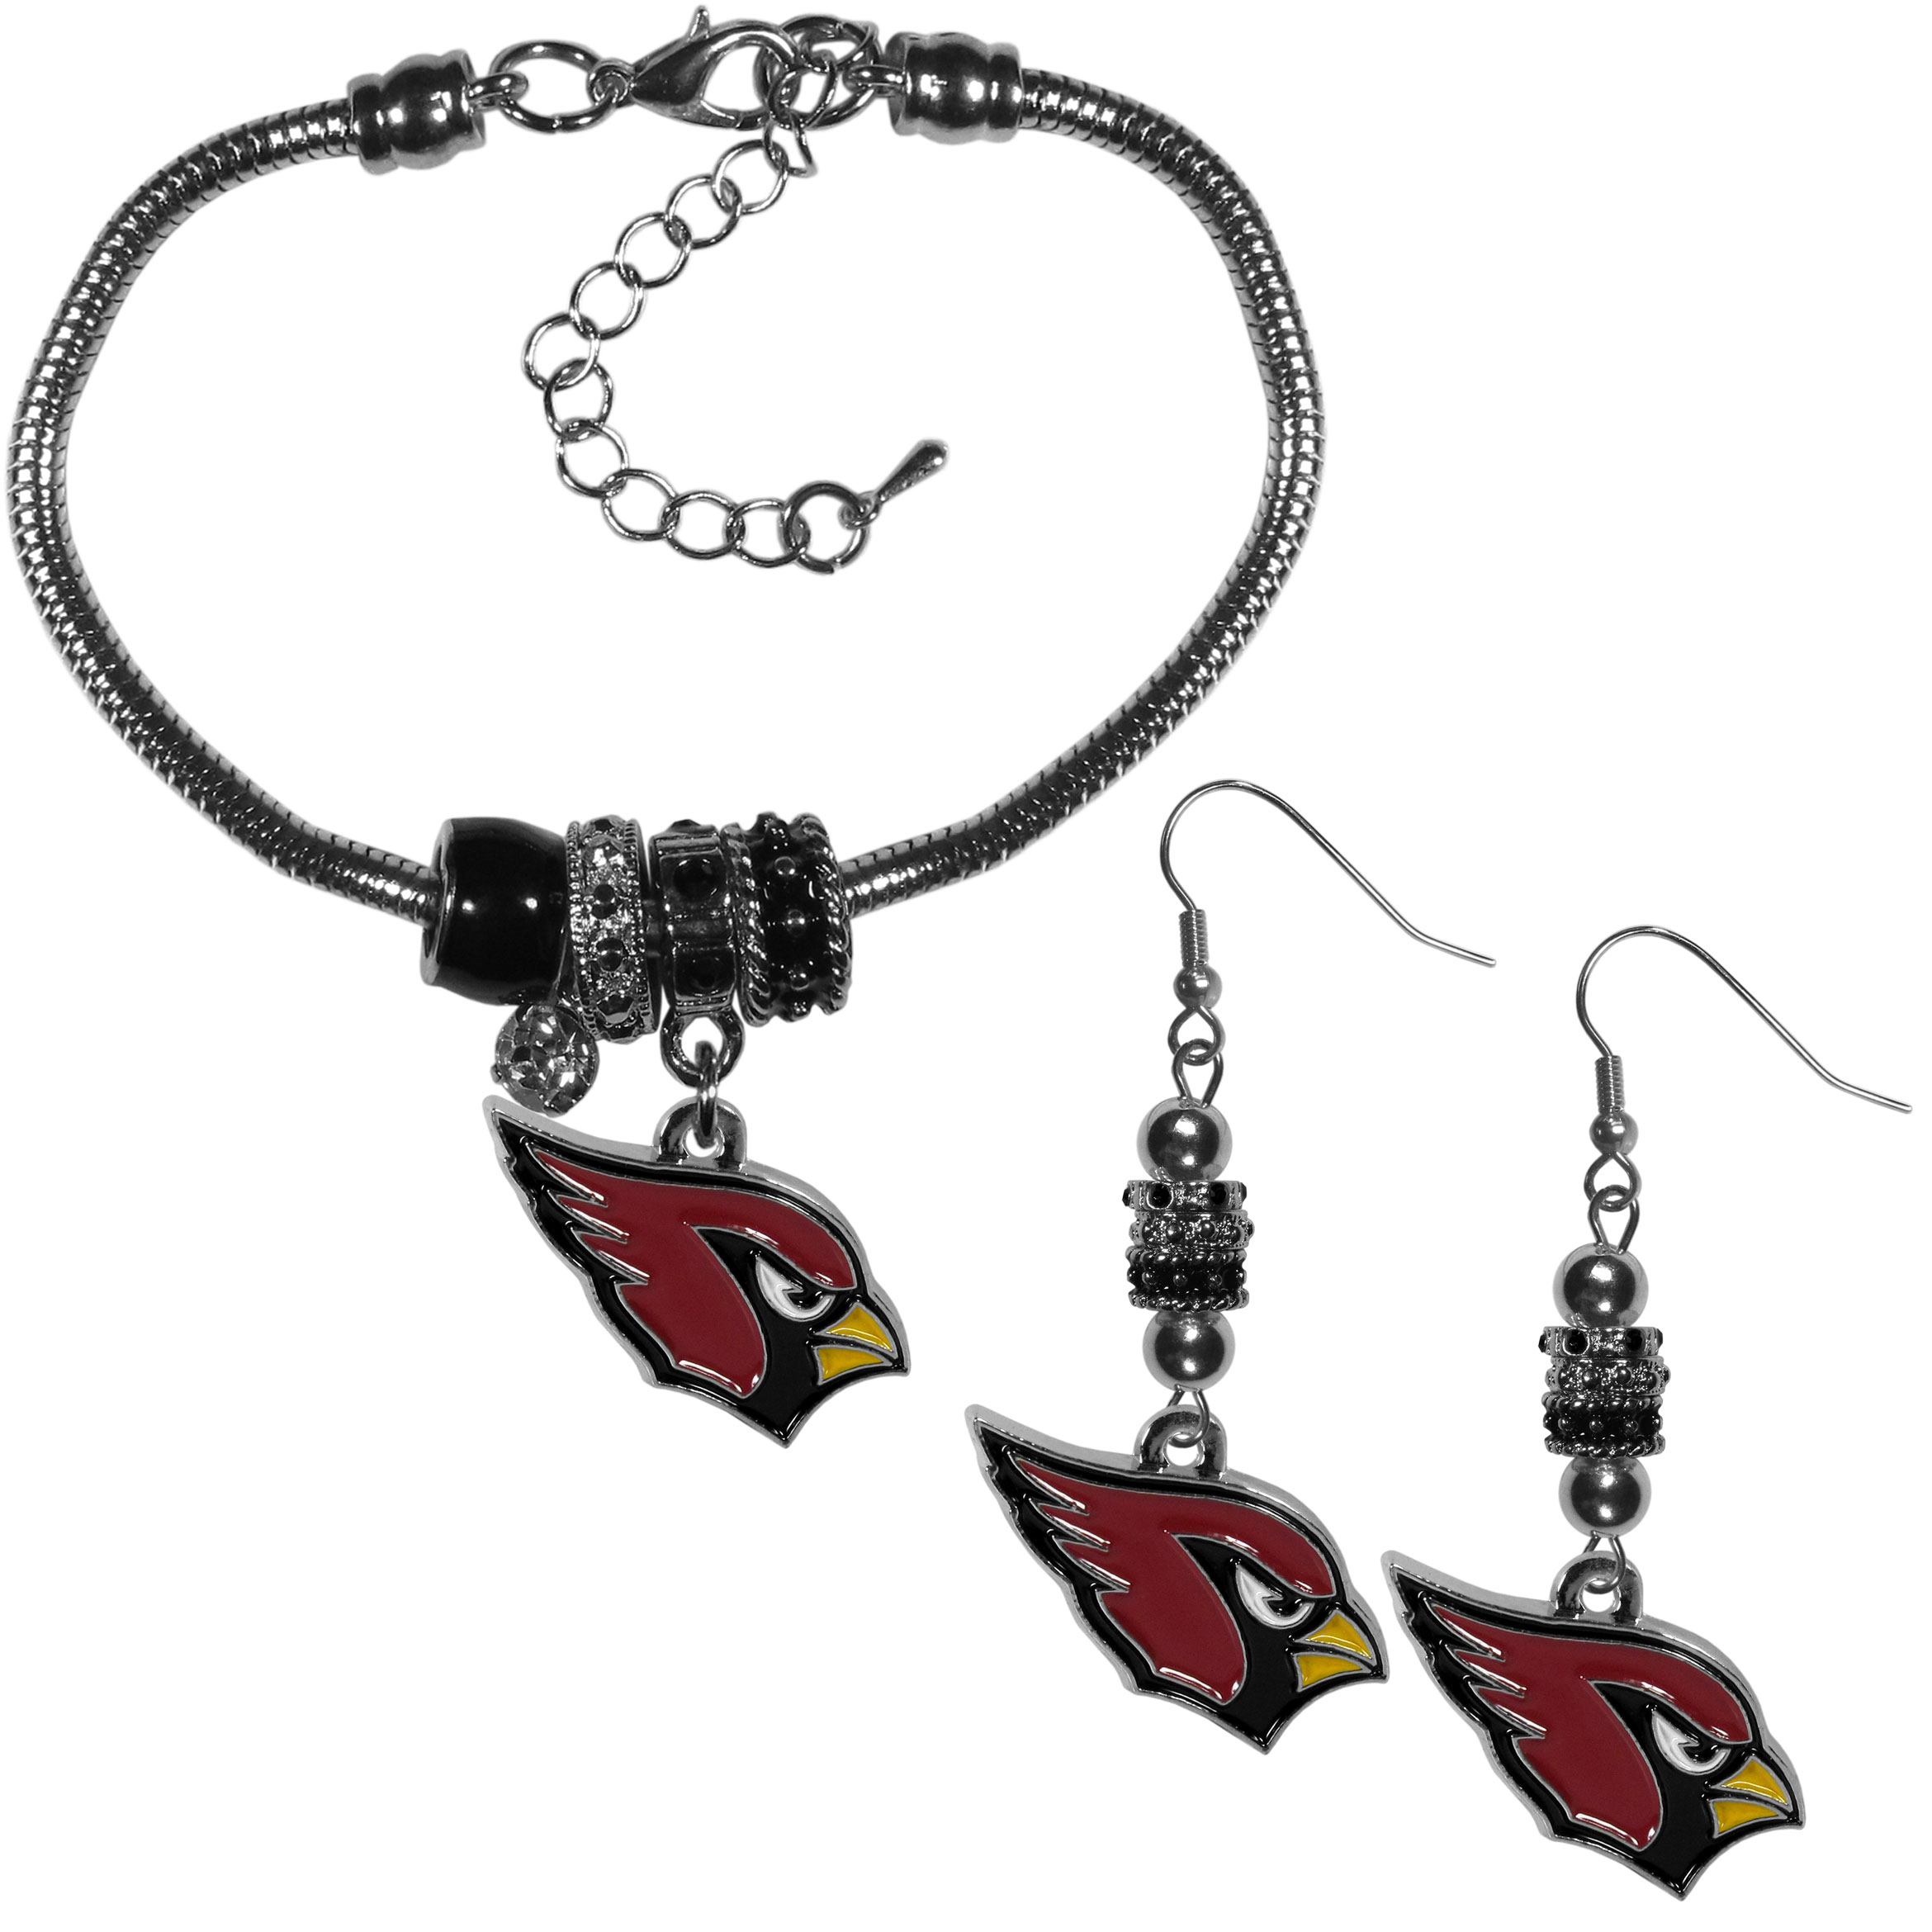 Arizona Cardinals Euro Bead Earrings and Bracelet Set - We combine the popular Euro bead style with your love of the Arizona Cardinals with this beautiful jewelry set that includes earrings and a matching bracelet. The stylish earrings feature hypoallergenic, nickel free fishhook posts and 3 team colored Euro beads and a metal team charm. The matching snake chain bracelet is 7.5 inches long with a 2 inch extender and 4 Euro beads with a rhinestone charm and team charm.